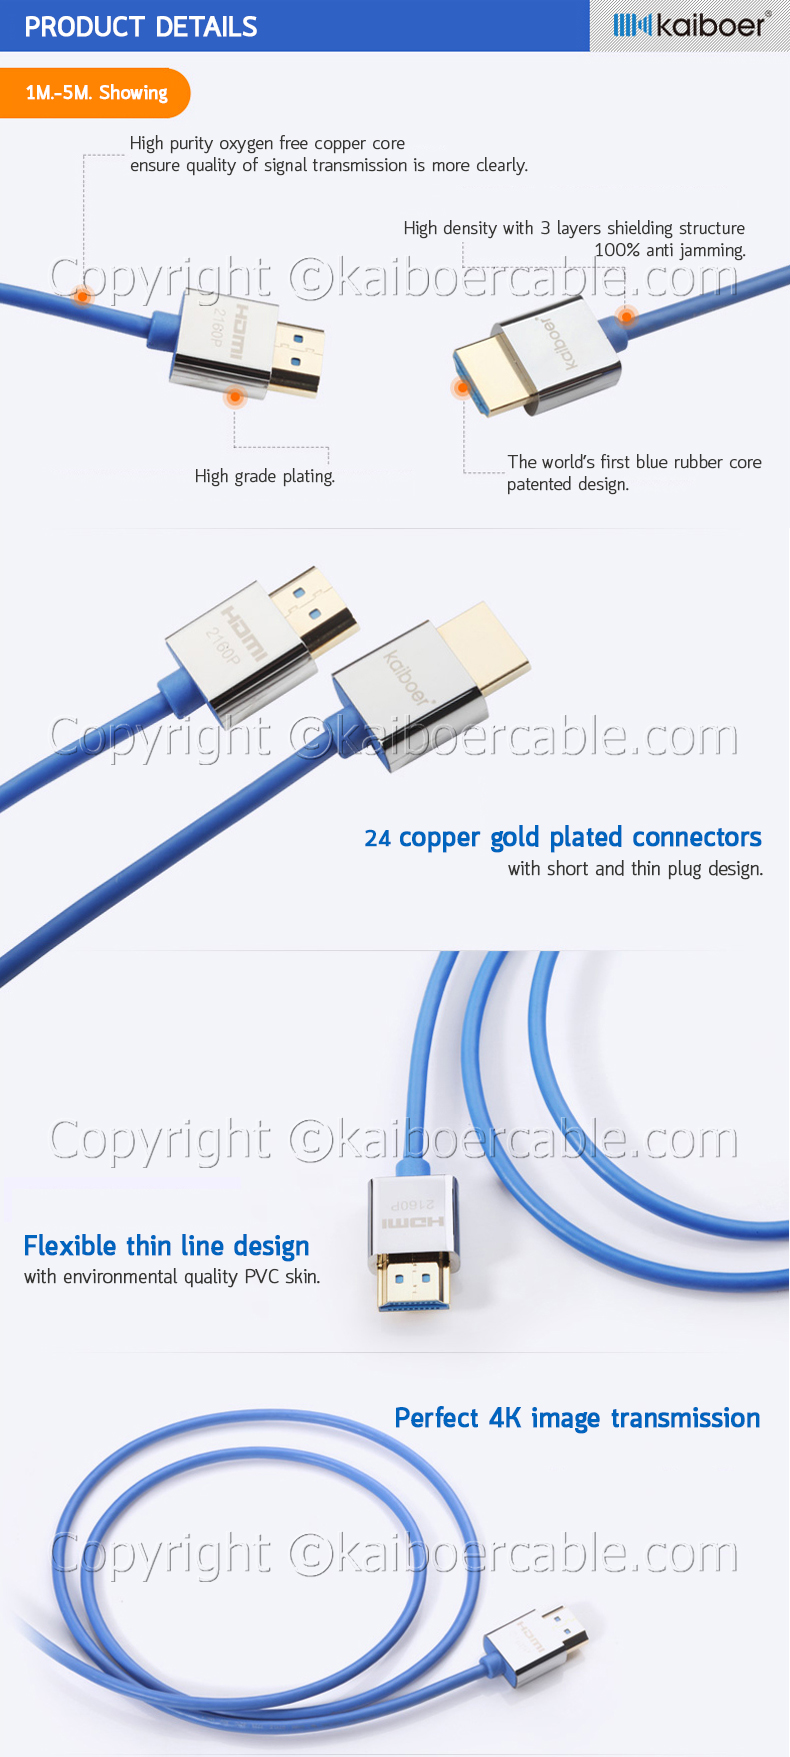 Kaiboer_KBE_HD_Series_Fashion_HDMI_Cable_2